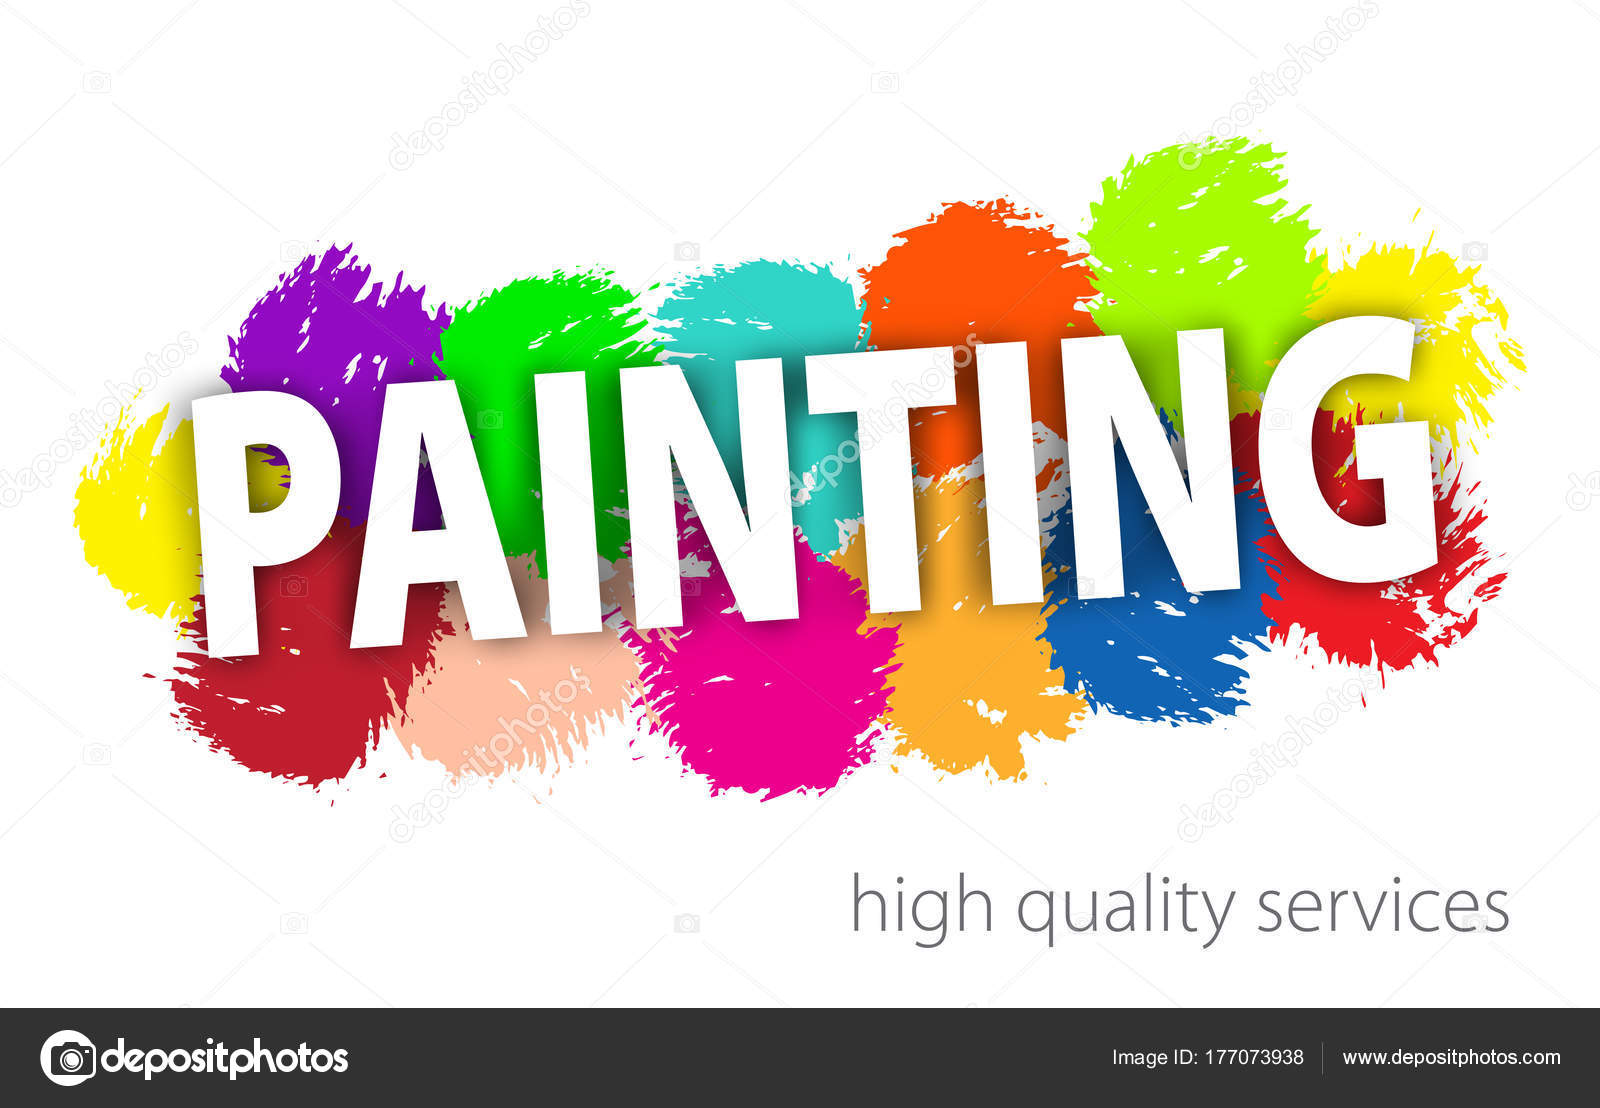 professional painting services logo abstract hand painted